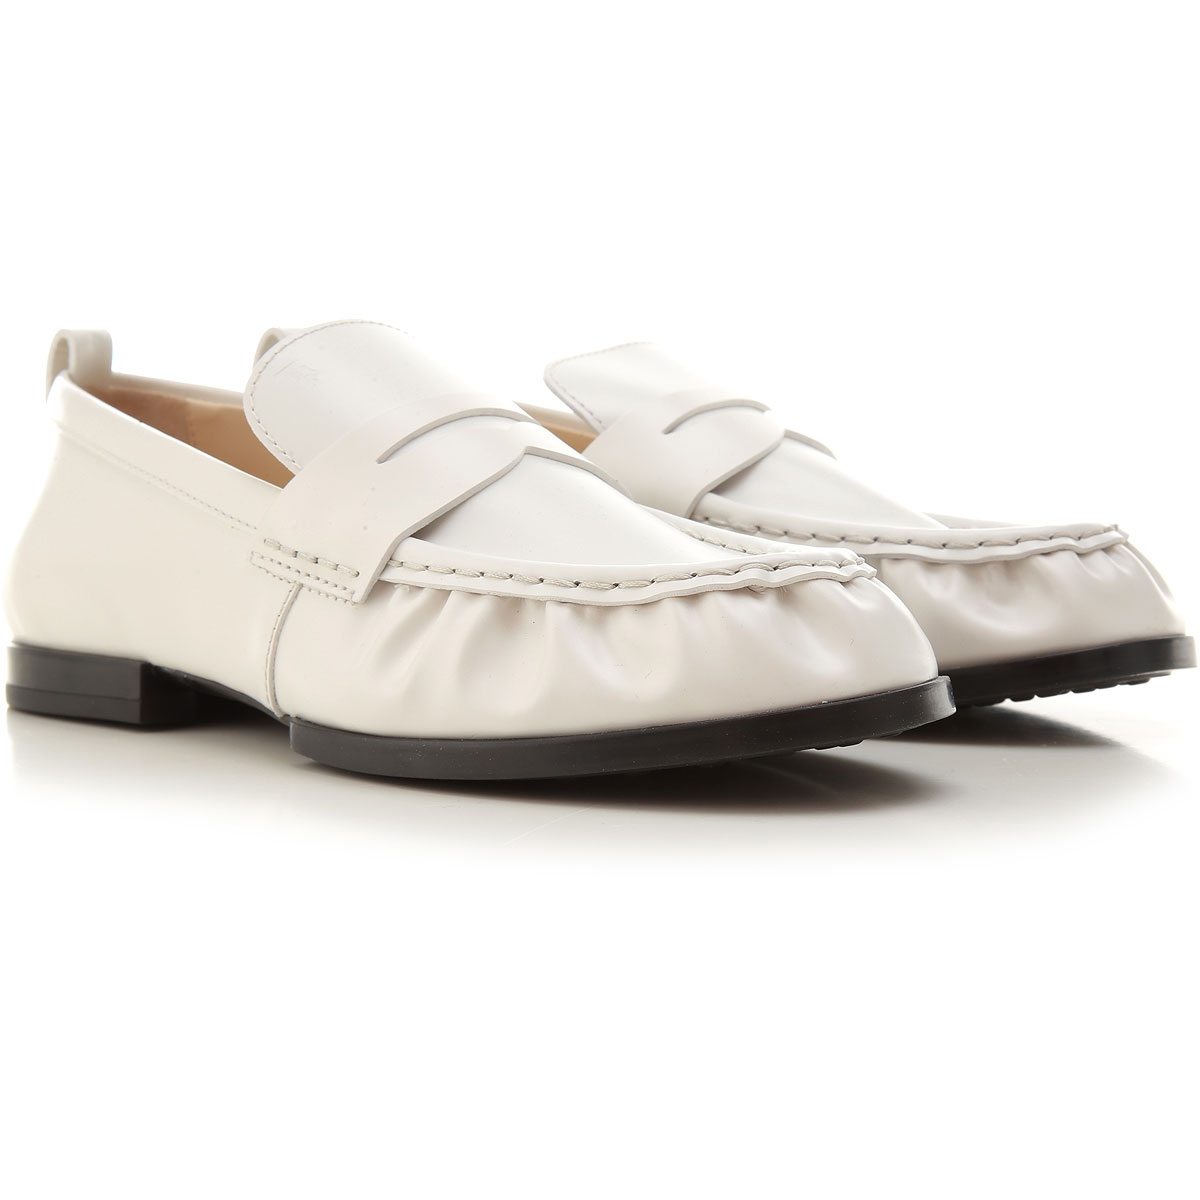 Tods Loafers for Women, White, Leather, 2021, 10 6 8 9 from Tods